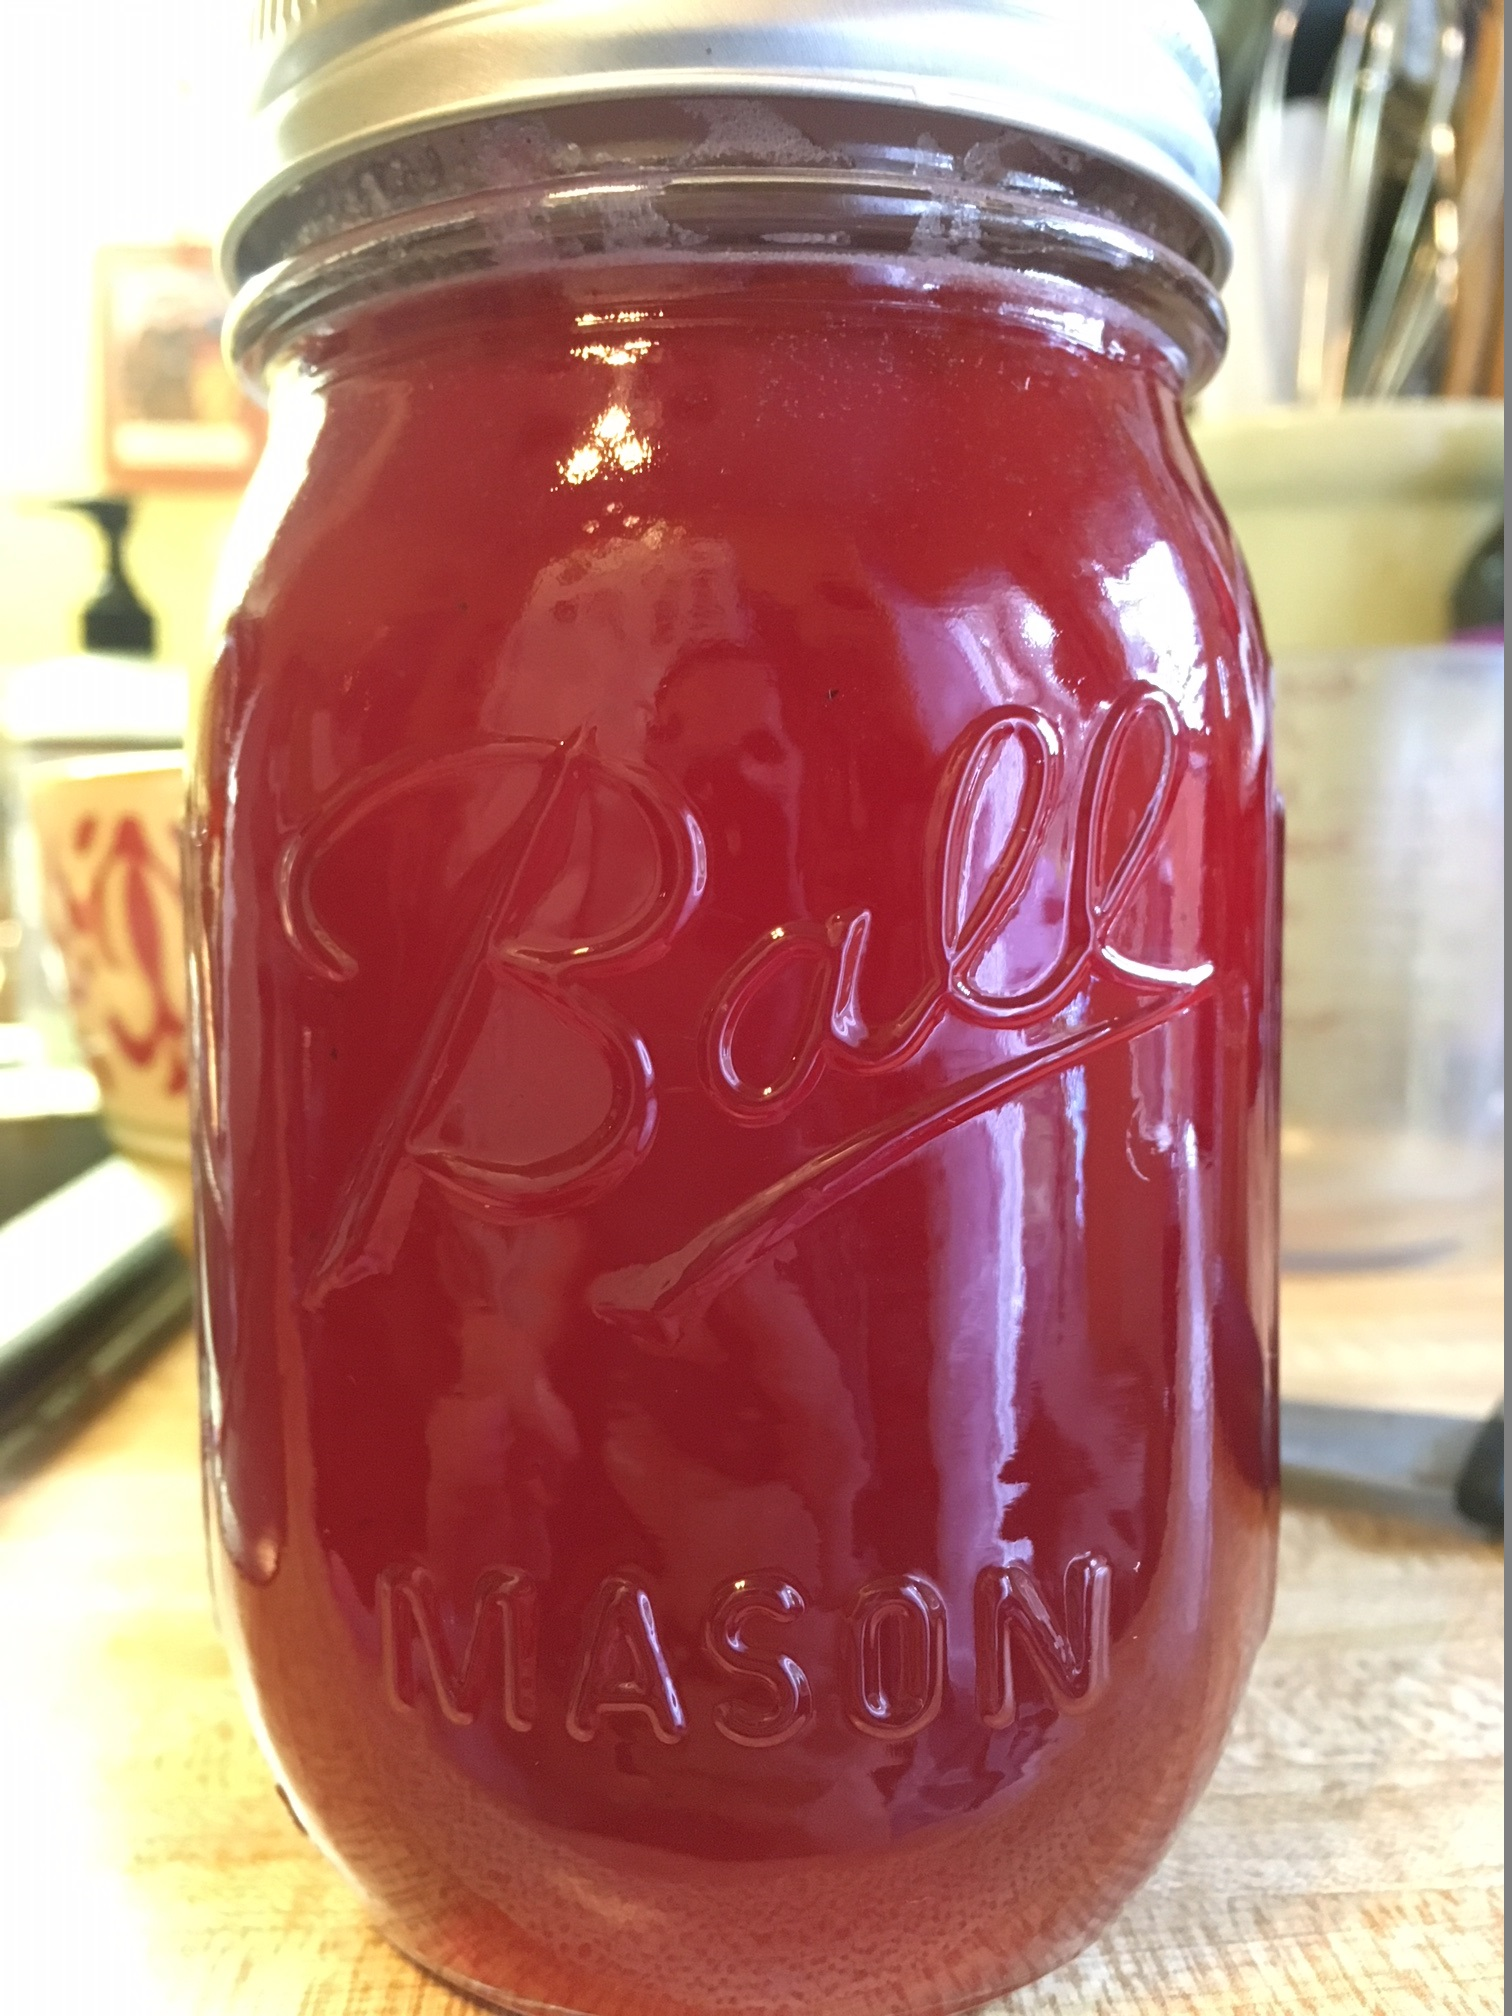 Mason jar of red beautyberry jelly